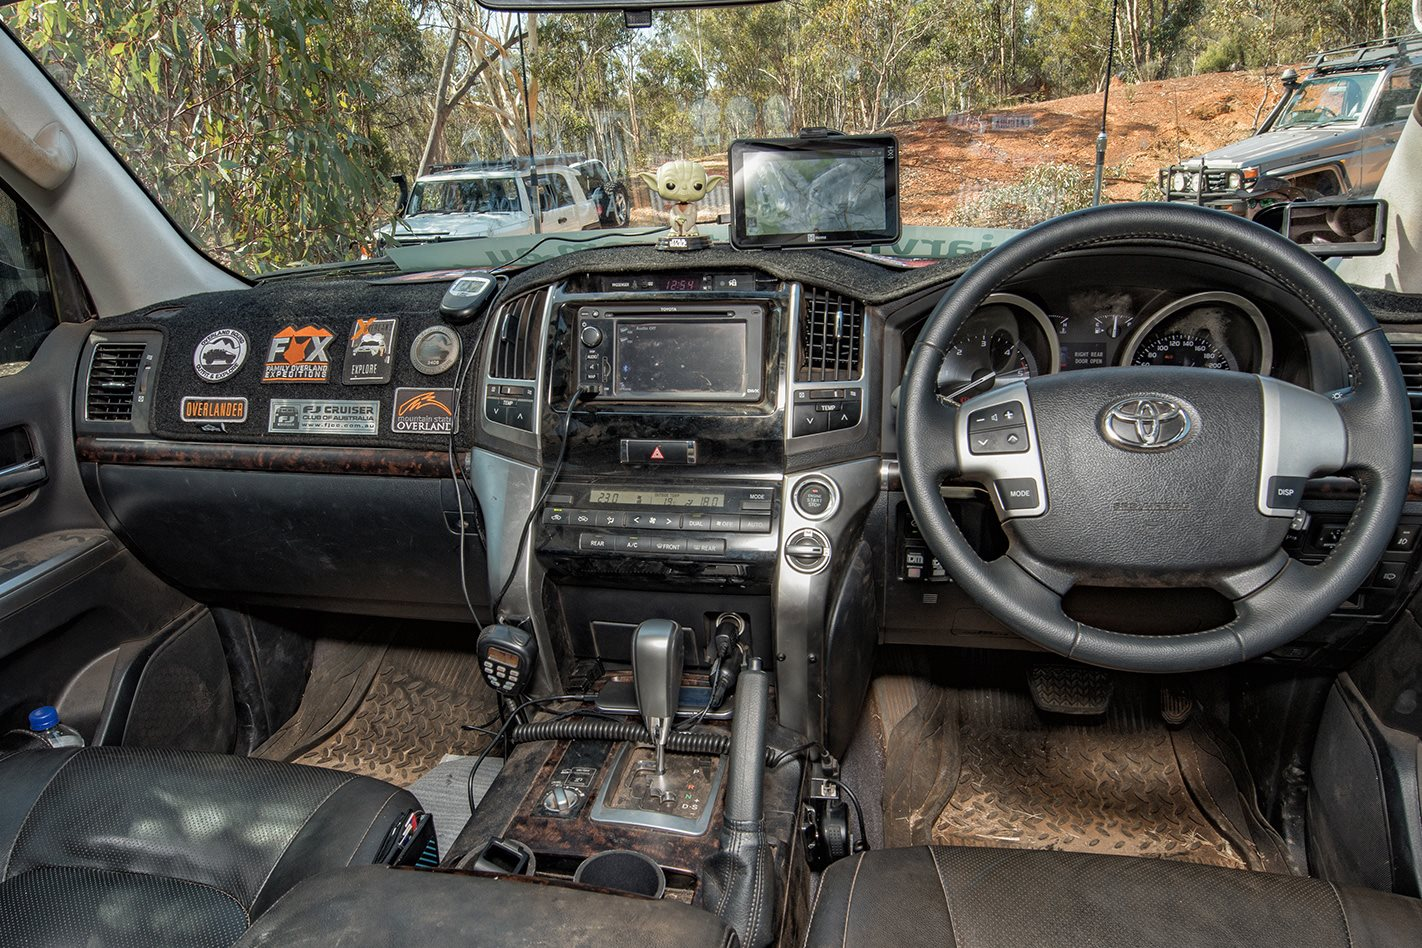 2014 Land Cruiser 200 Series interior